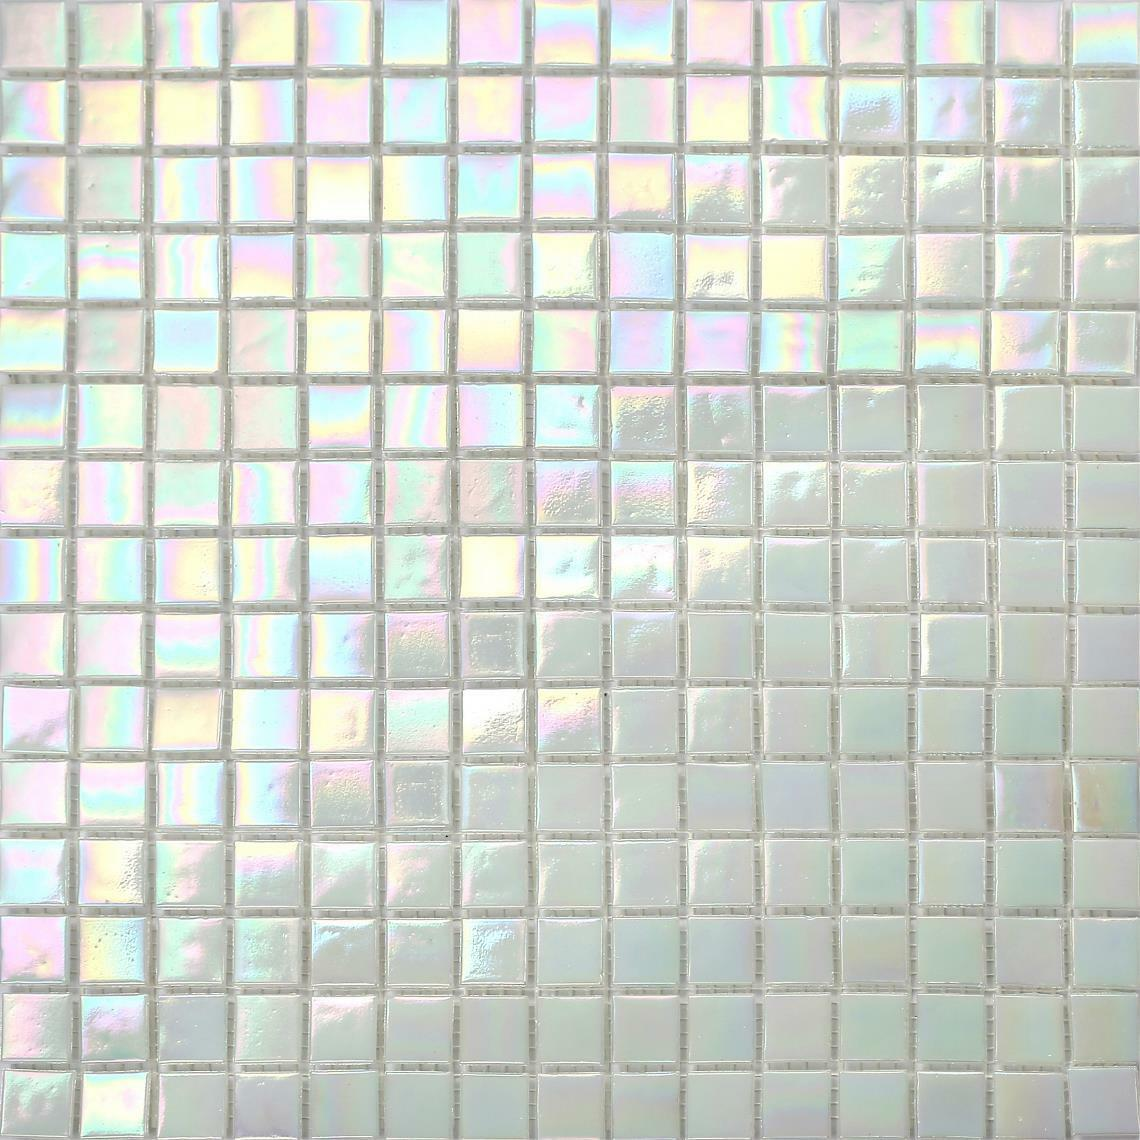 1 SQ M Iridescent Weiß Vitreous Glass Mosaic Tiles Bathroom Shower 0131